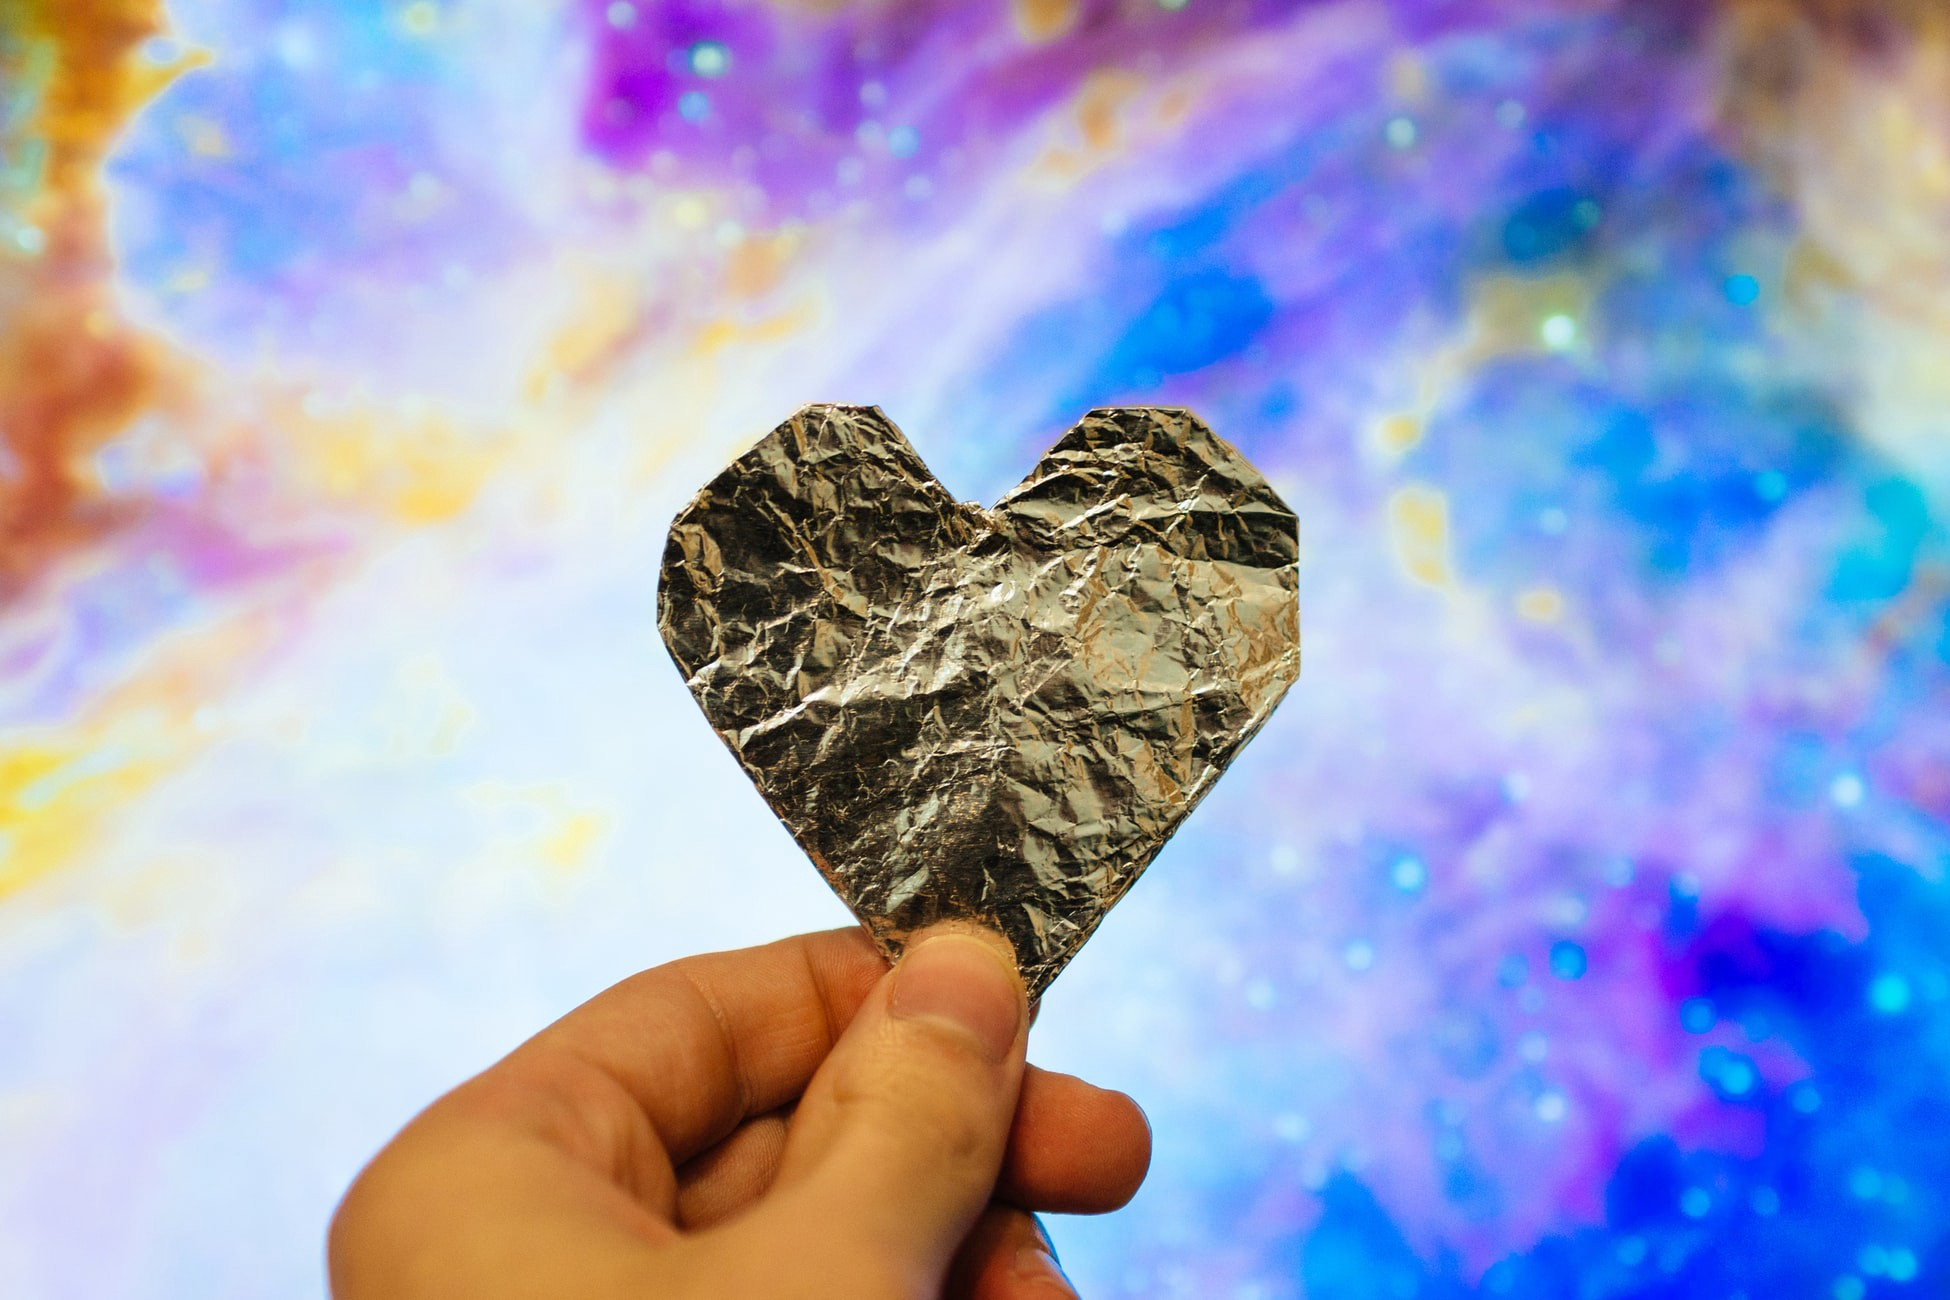 A hand holding up a heart-shaped piece of wrinkled gold foil against a pink, purple, blue, and gold background